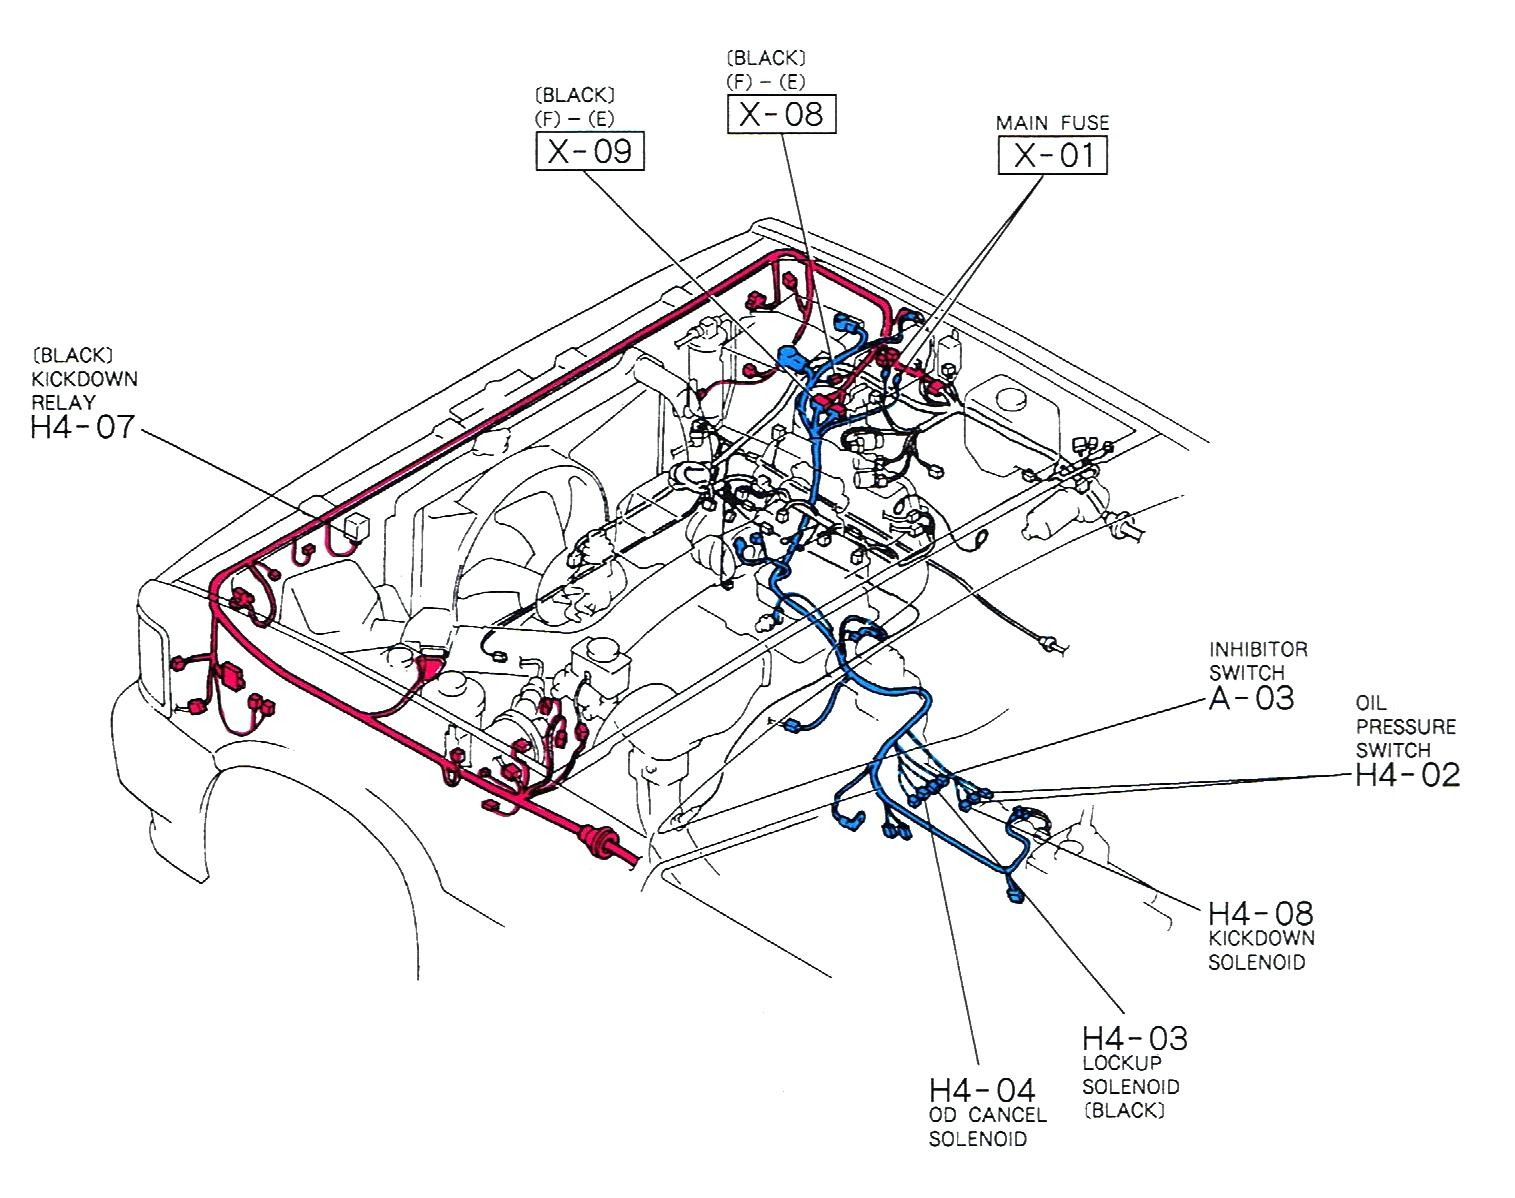 Audi Hid Ballast Wiring Diagram 2002 Electrical Diagrams Schematic Hps New Image Metal Halide Lamp